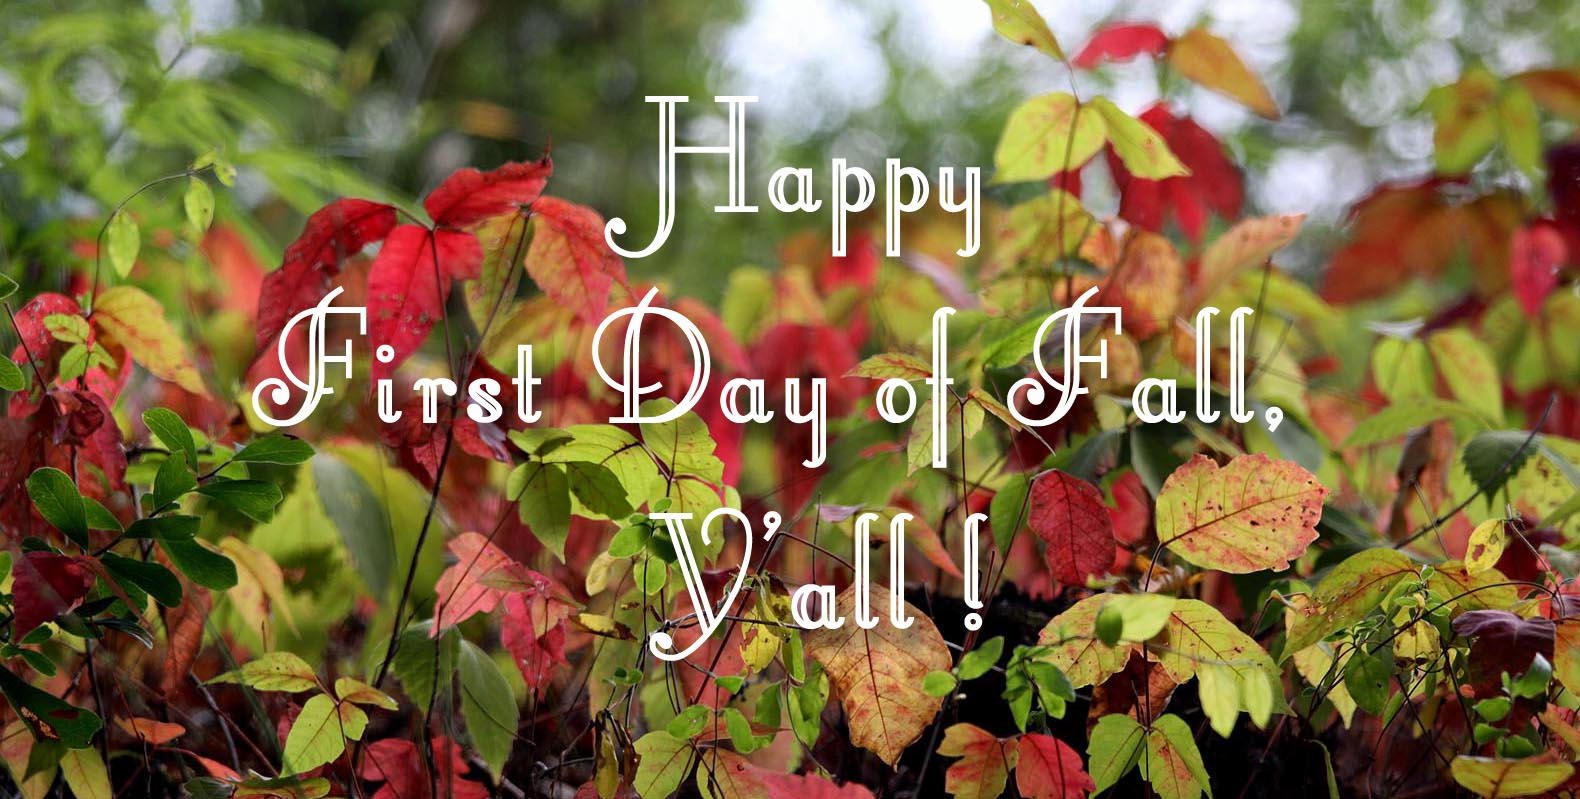 Southern Lagniappe Happy First Day of Fall 1580x799